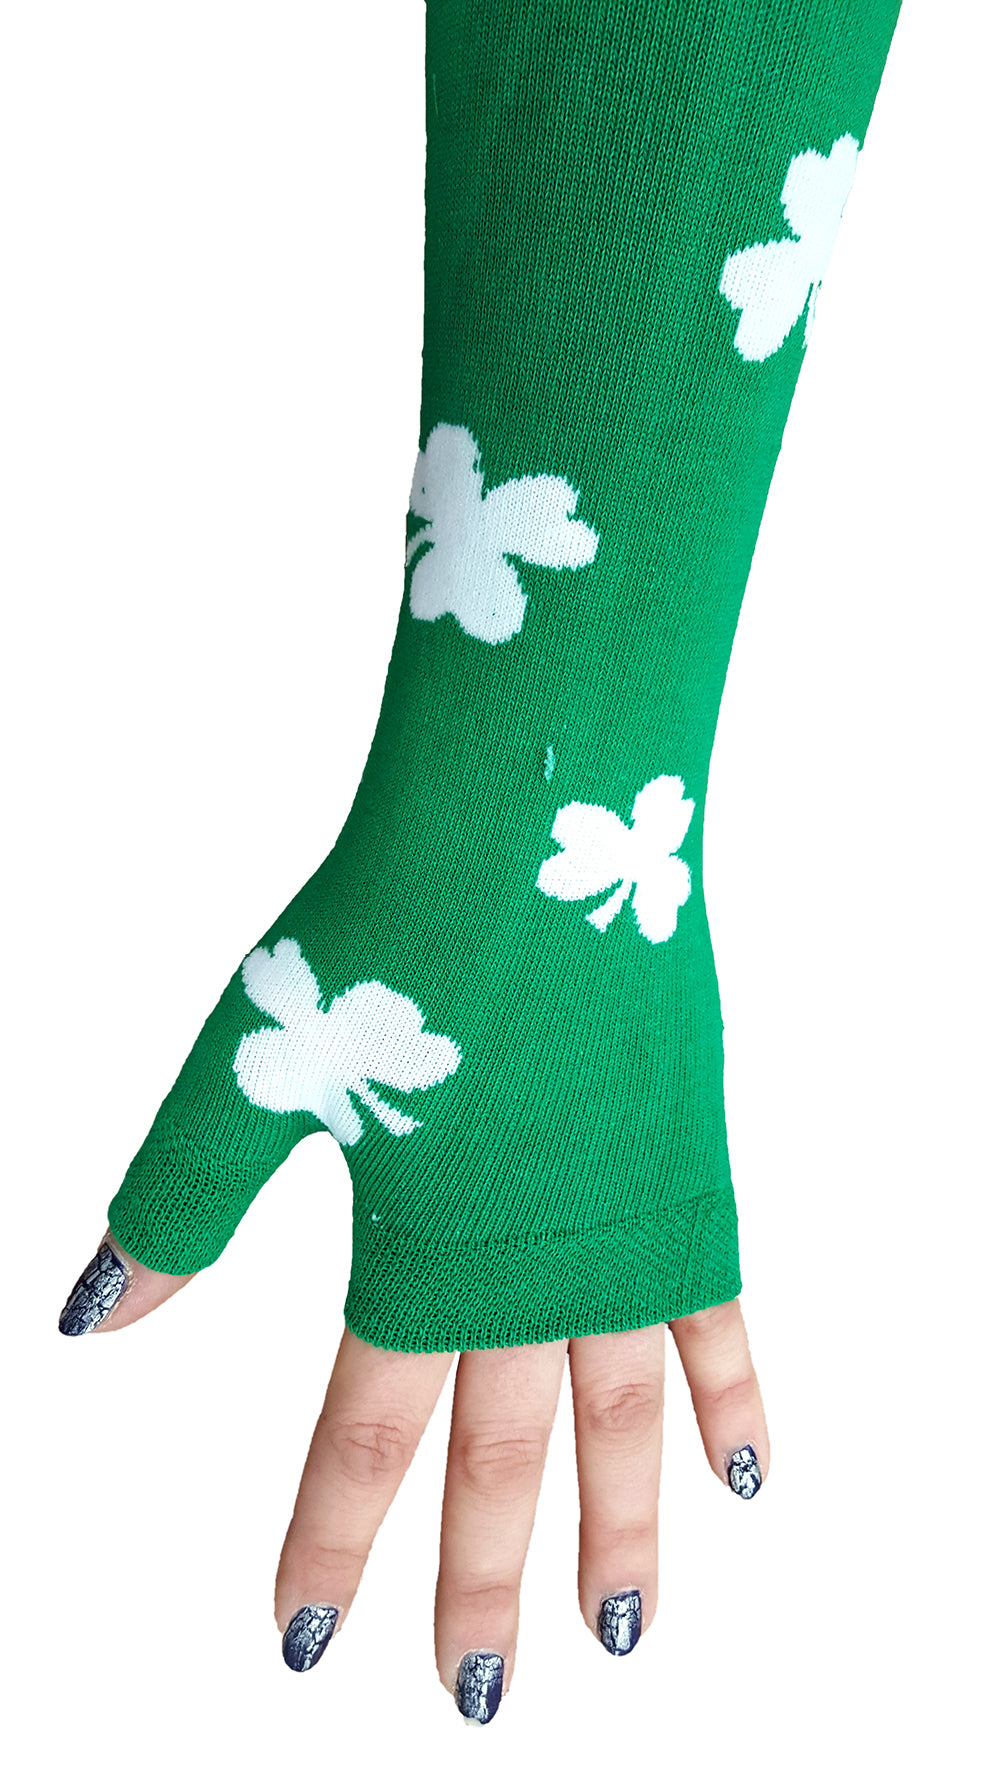 All Over Shamrocks Arm Warmers Left Hand